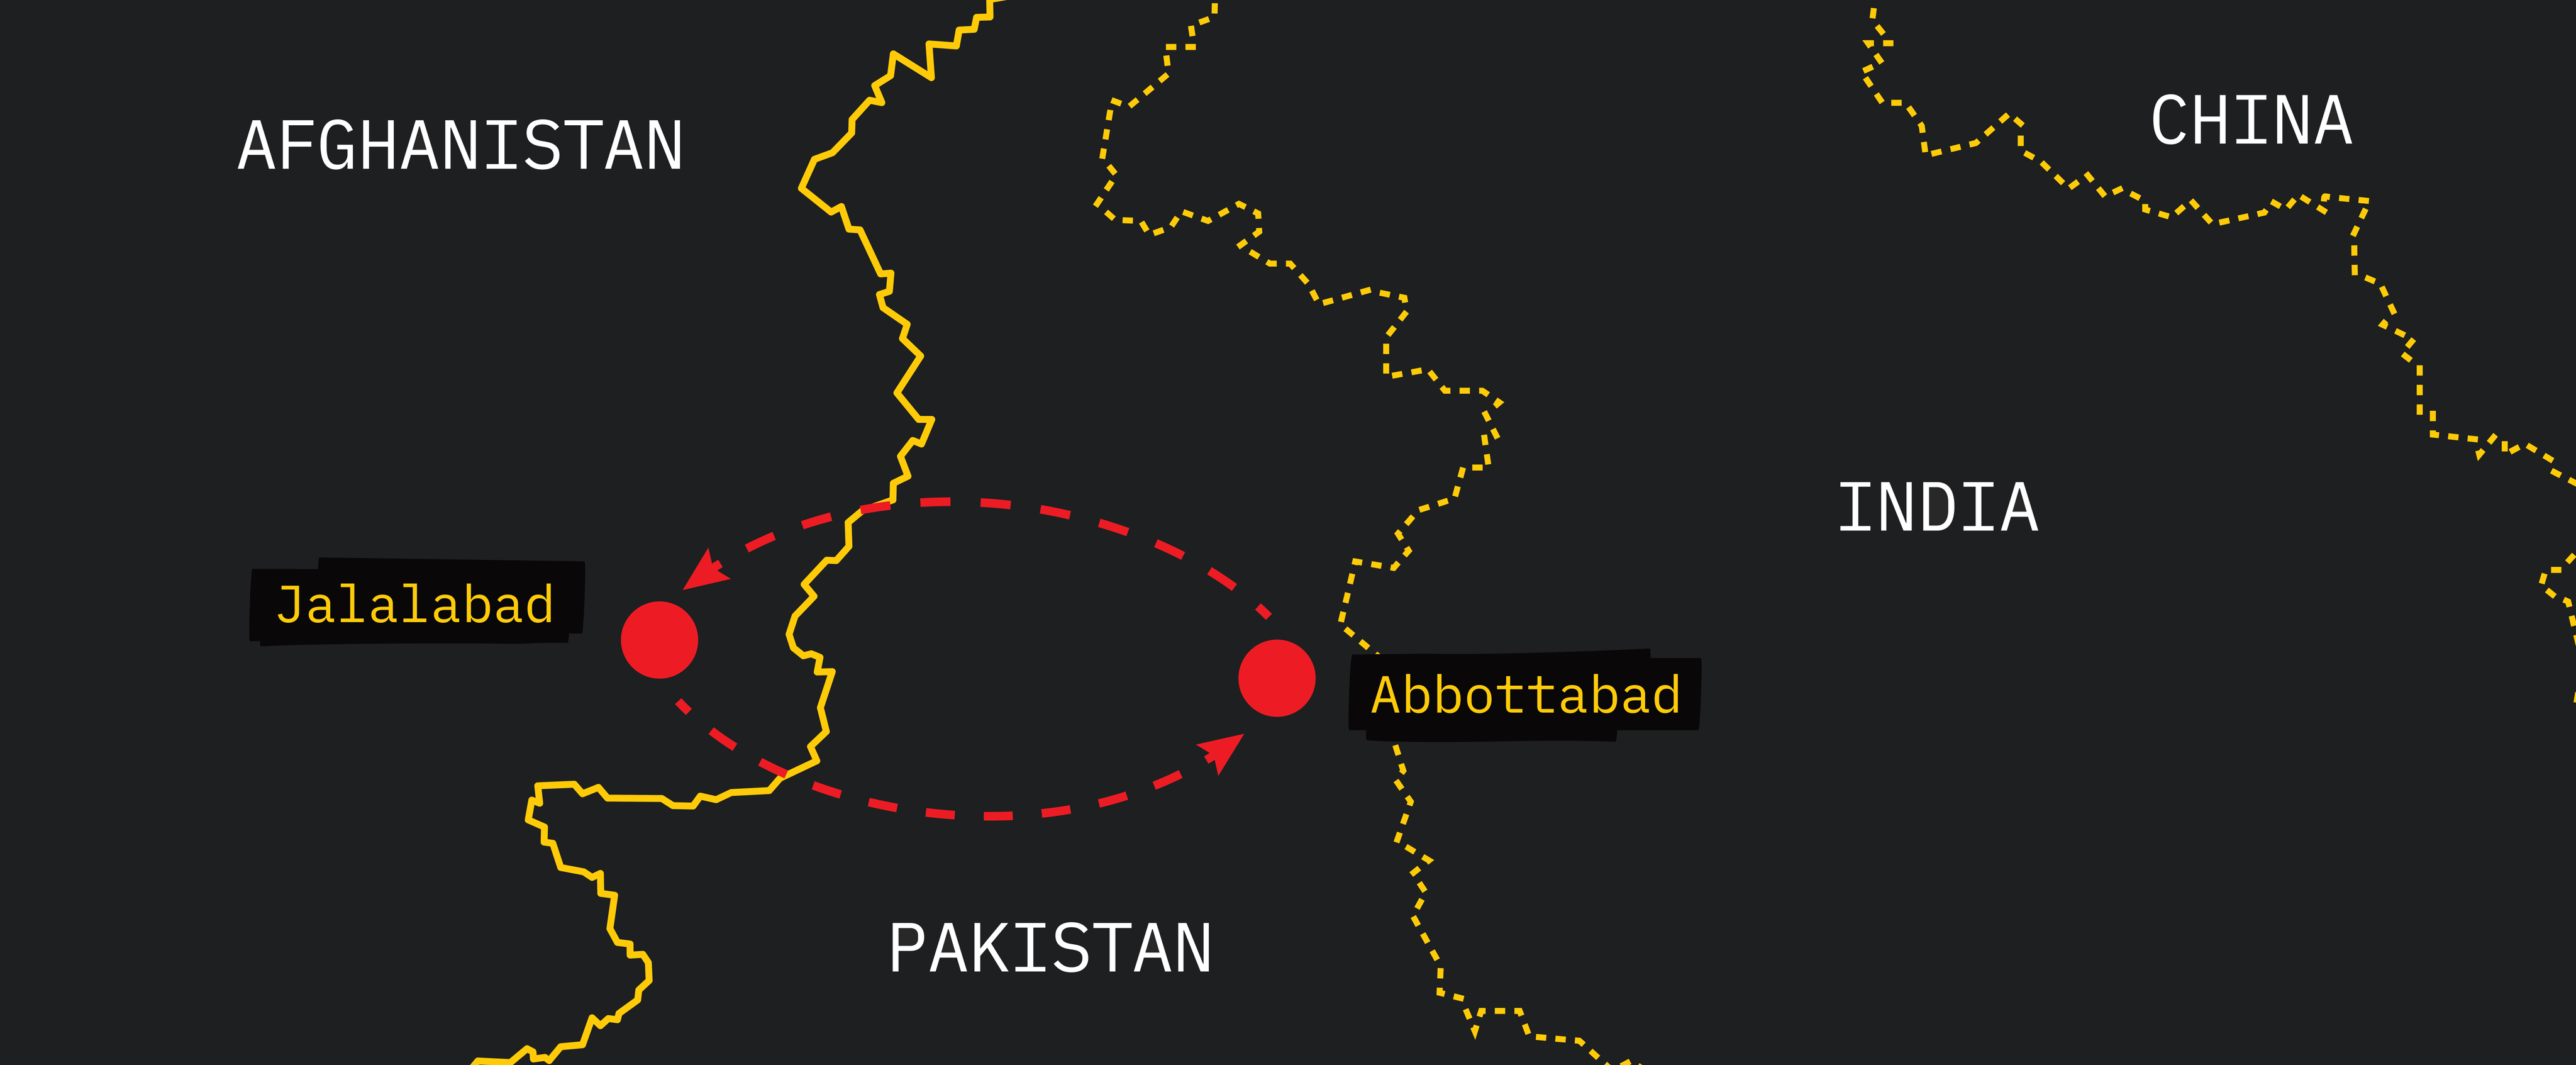 Graphic map showing dotted connection between Jalalabad in Afghanistan and Abbottabad in Pakistan.